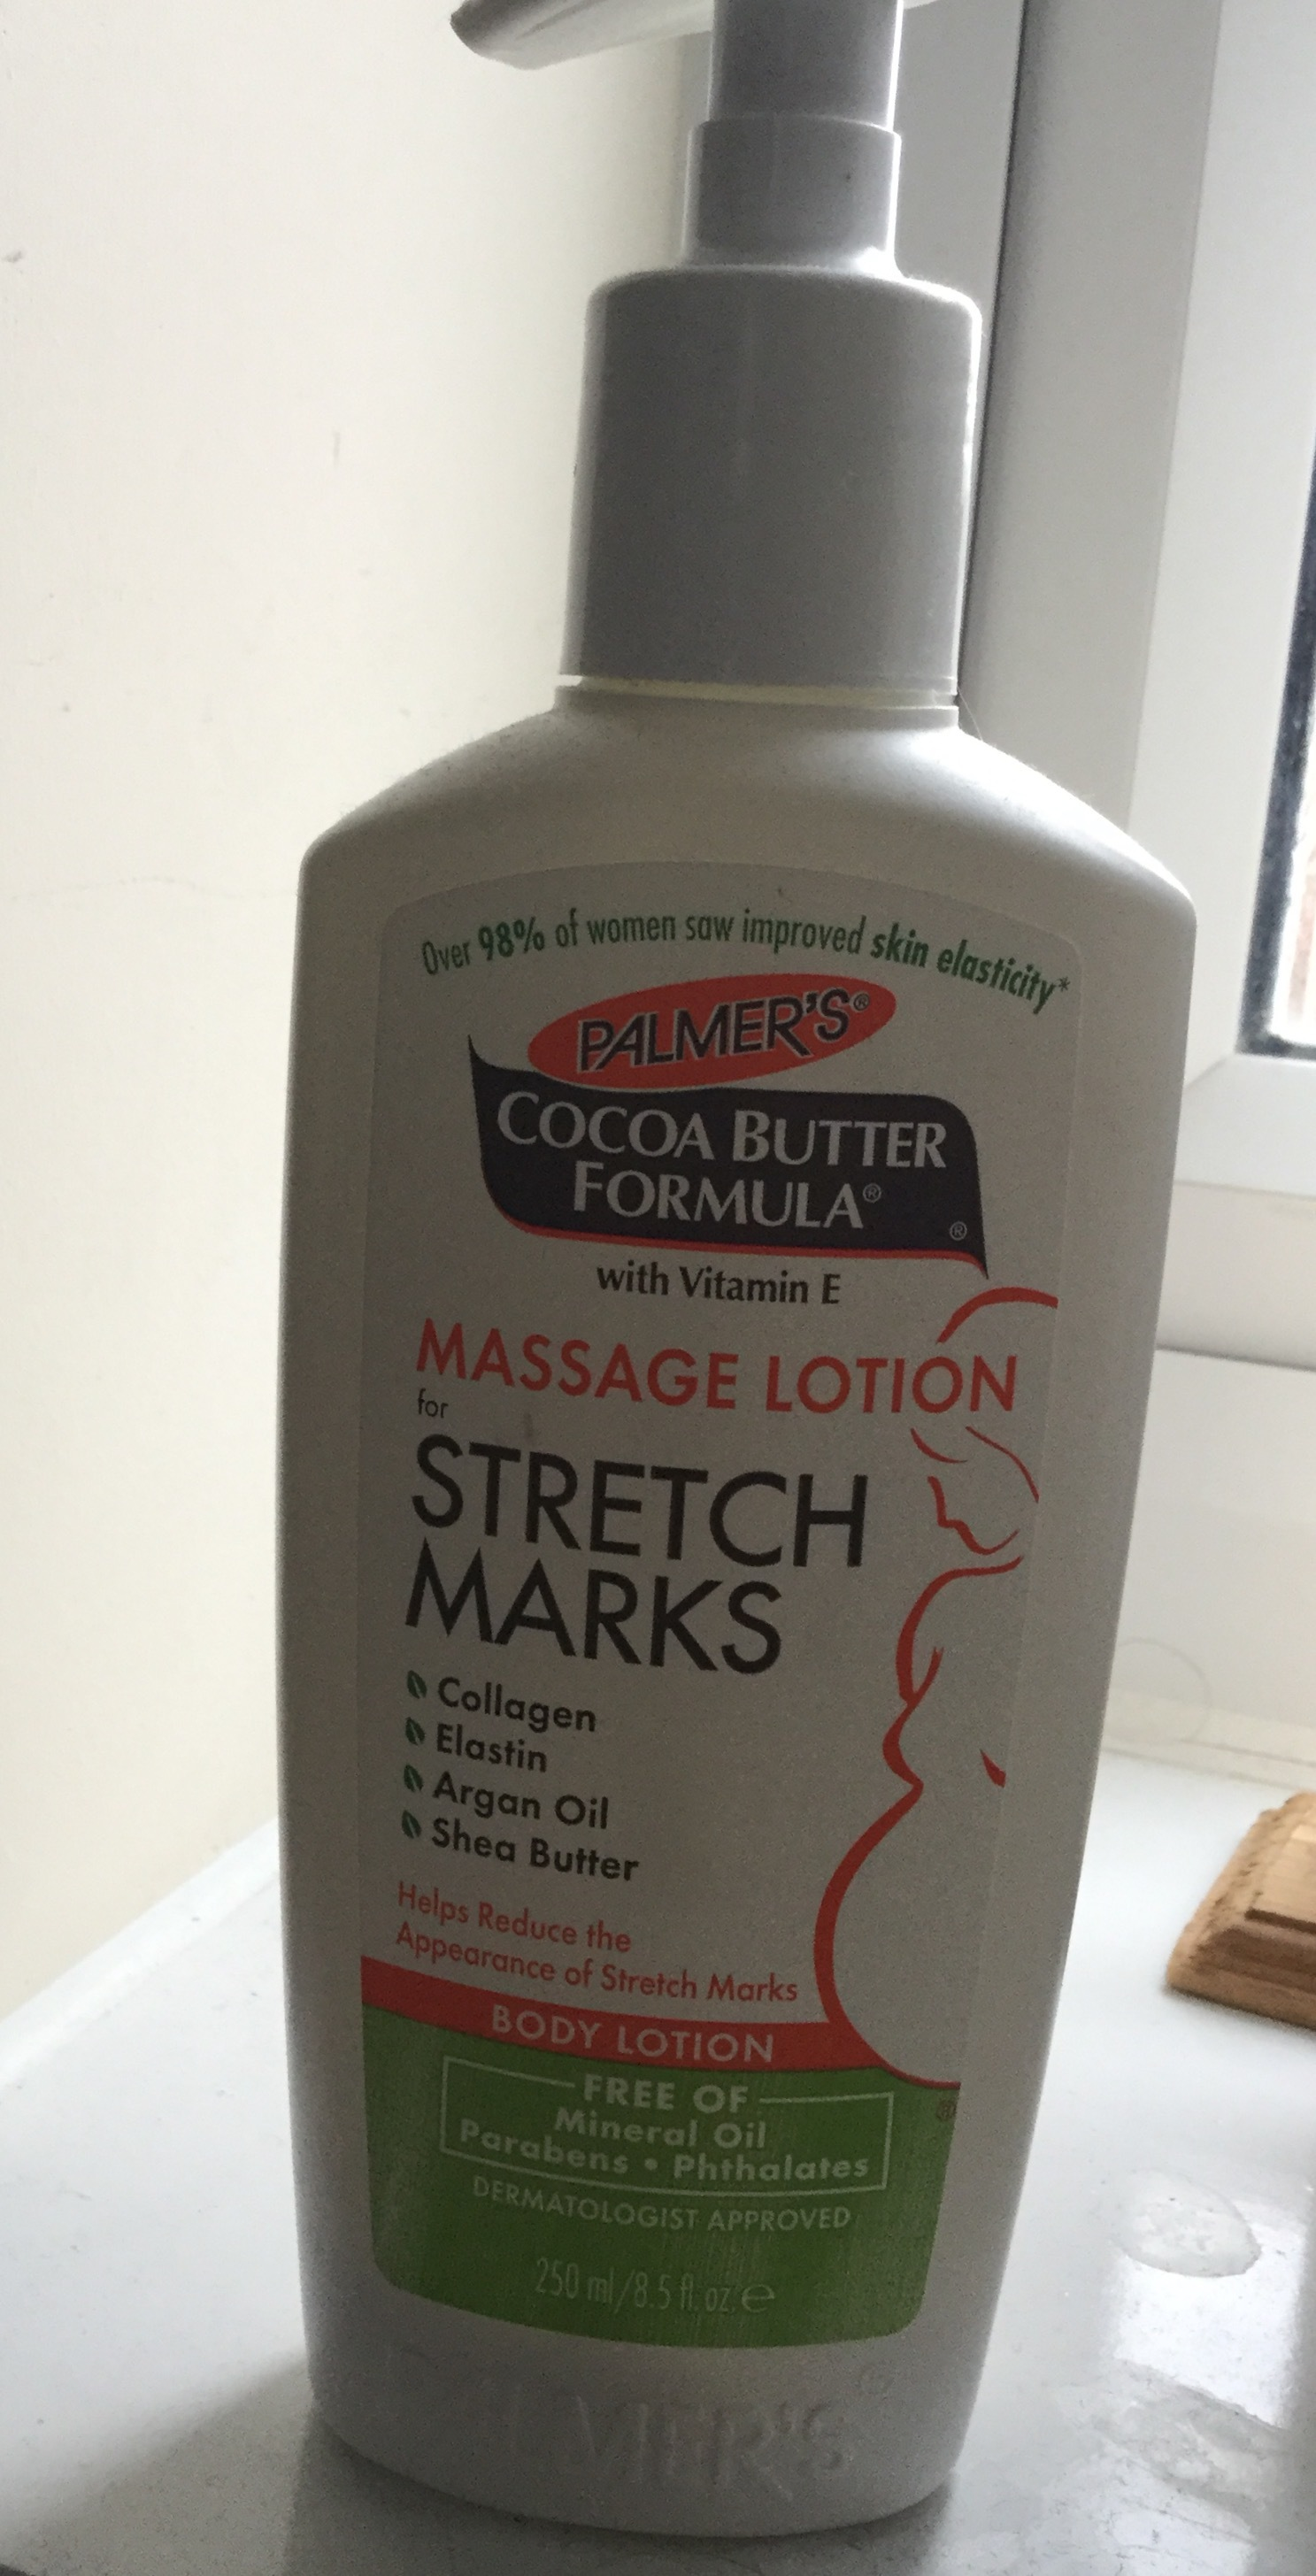 Palmer S Cocoa Butter Formula Massage Lotion For Stretch Marks